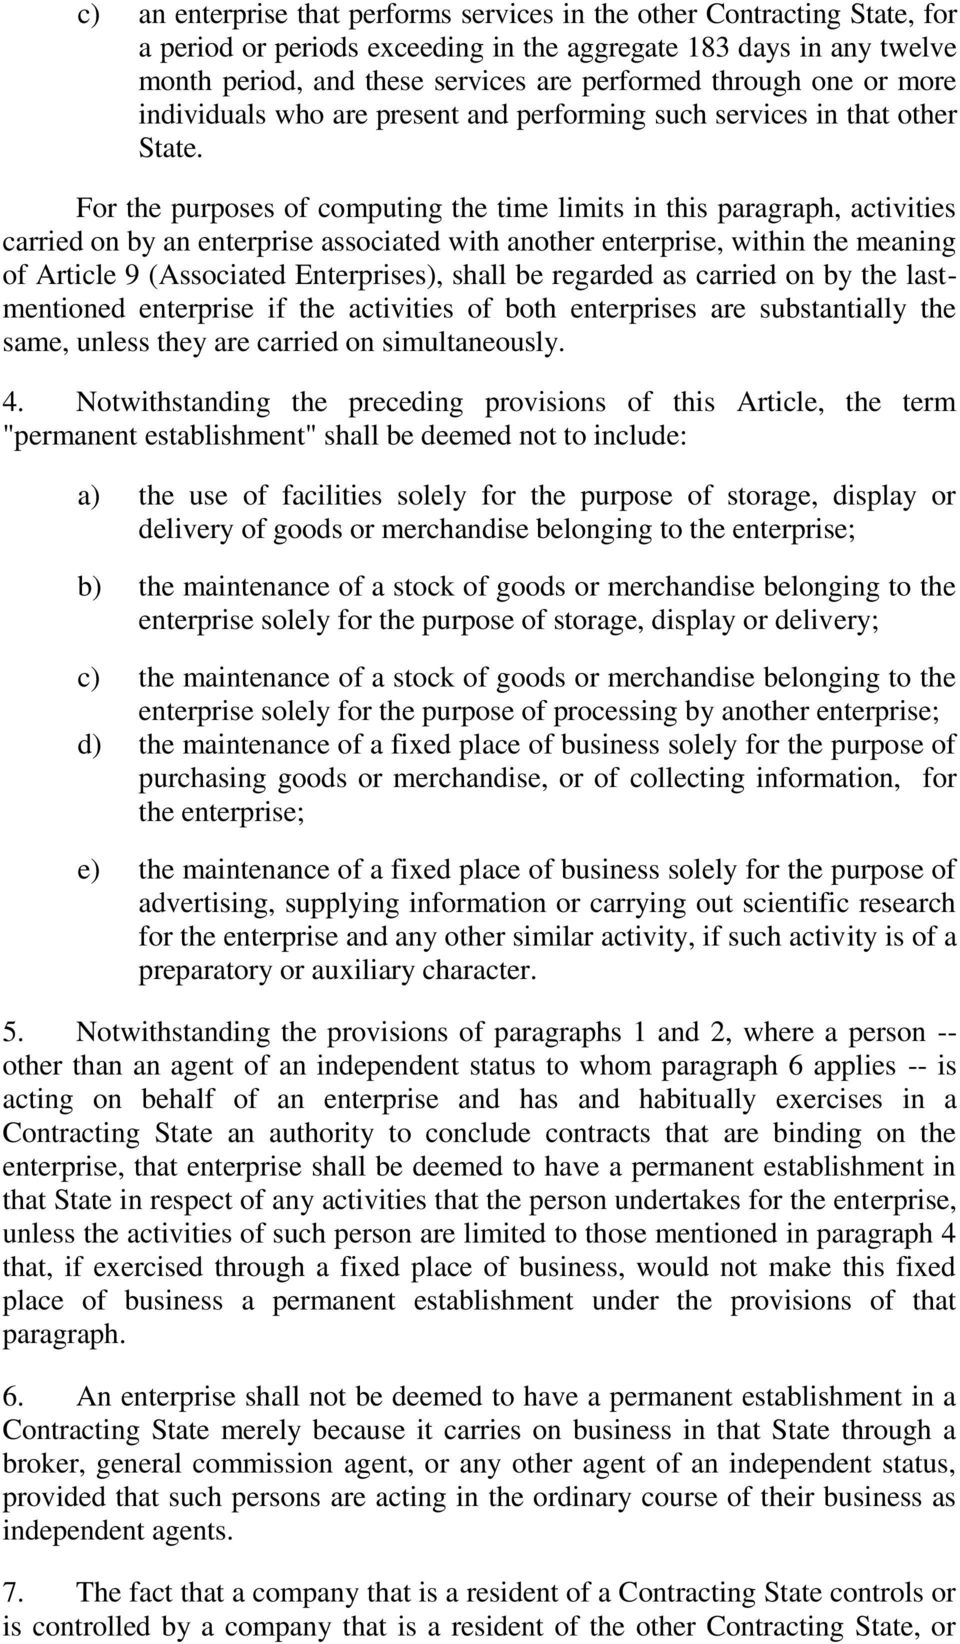 For the purposes of computing the time limits in this paragraph, activities carried on by an enterprise associated with another enterprise, within the meaning of Article 9 (Associated Enterprises),